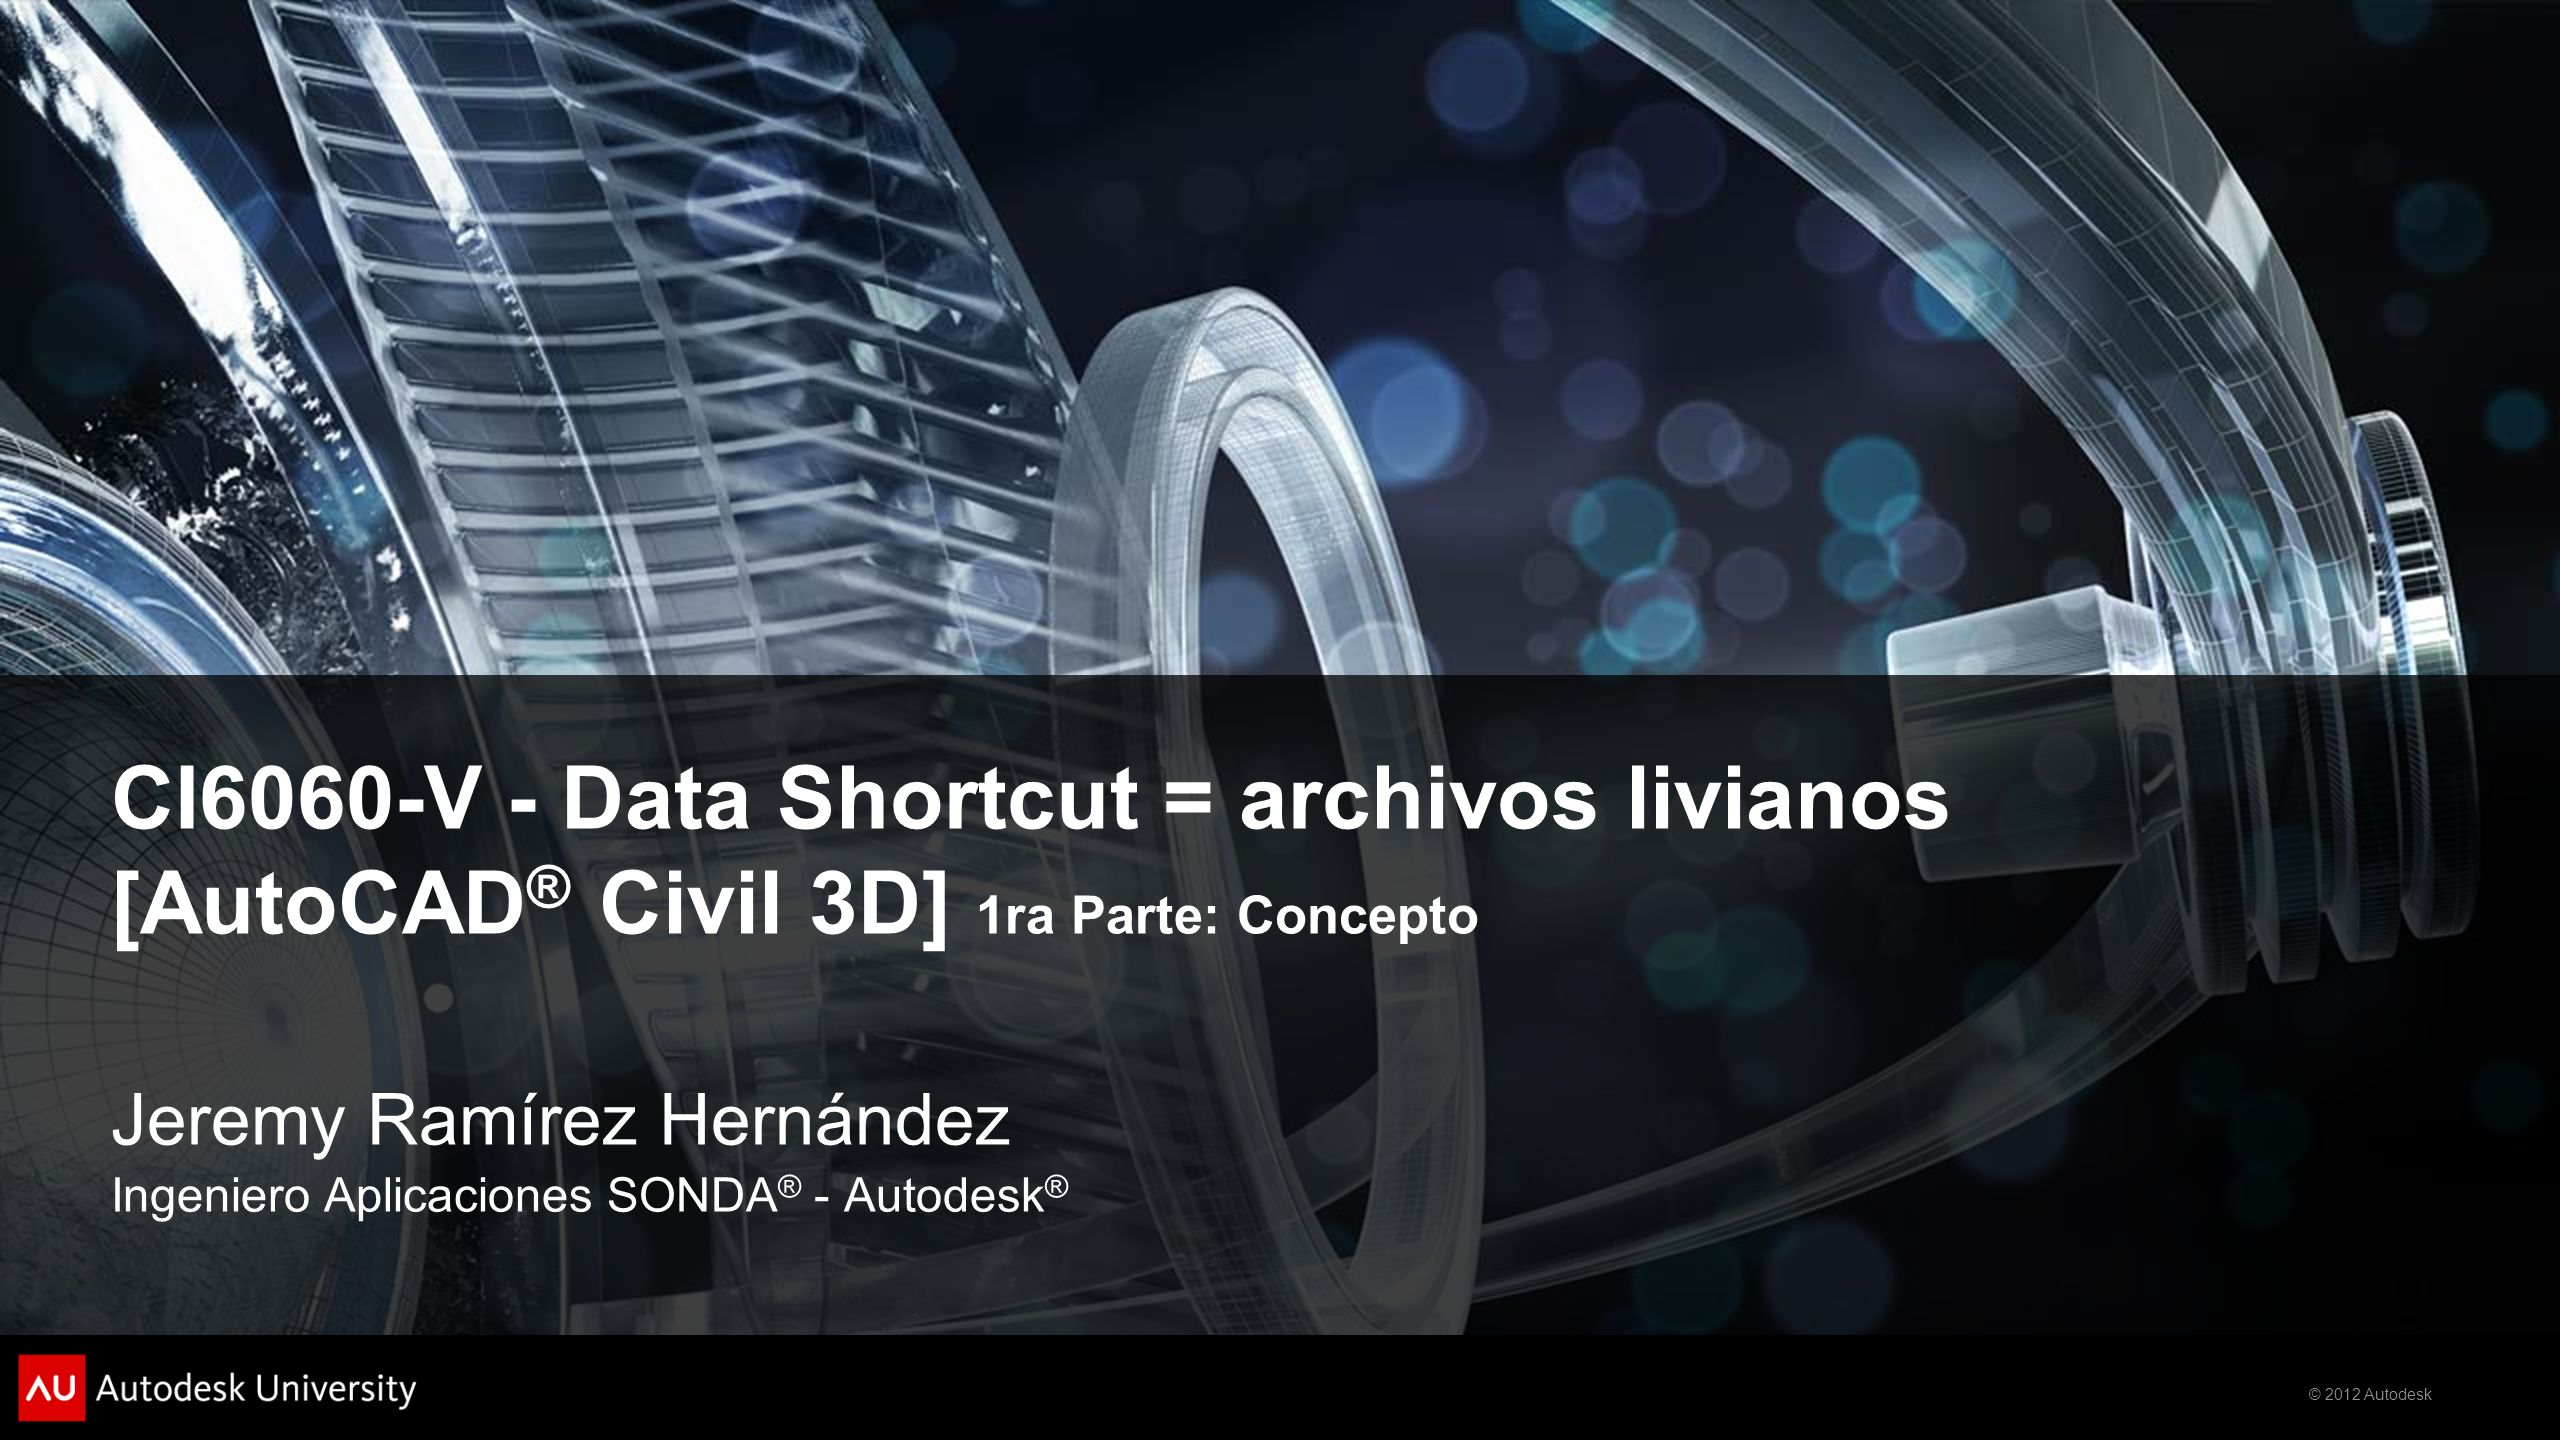 CI6060-V - Data Shortcut = archivos livianos [AutoCAD® Civil 3D] 1ra Parte: Concepto